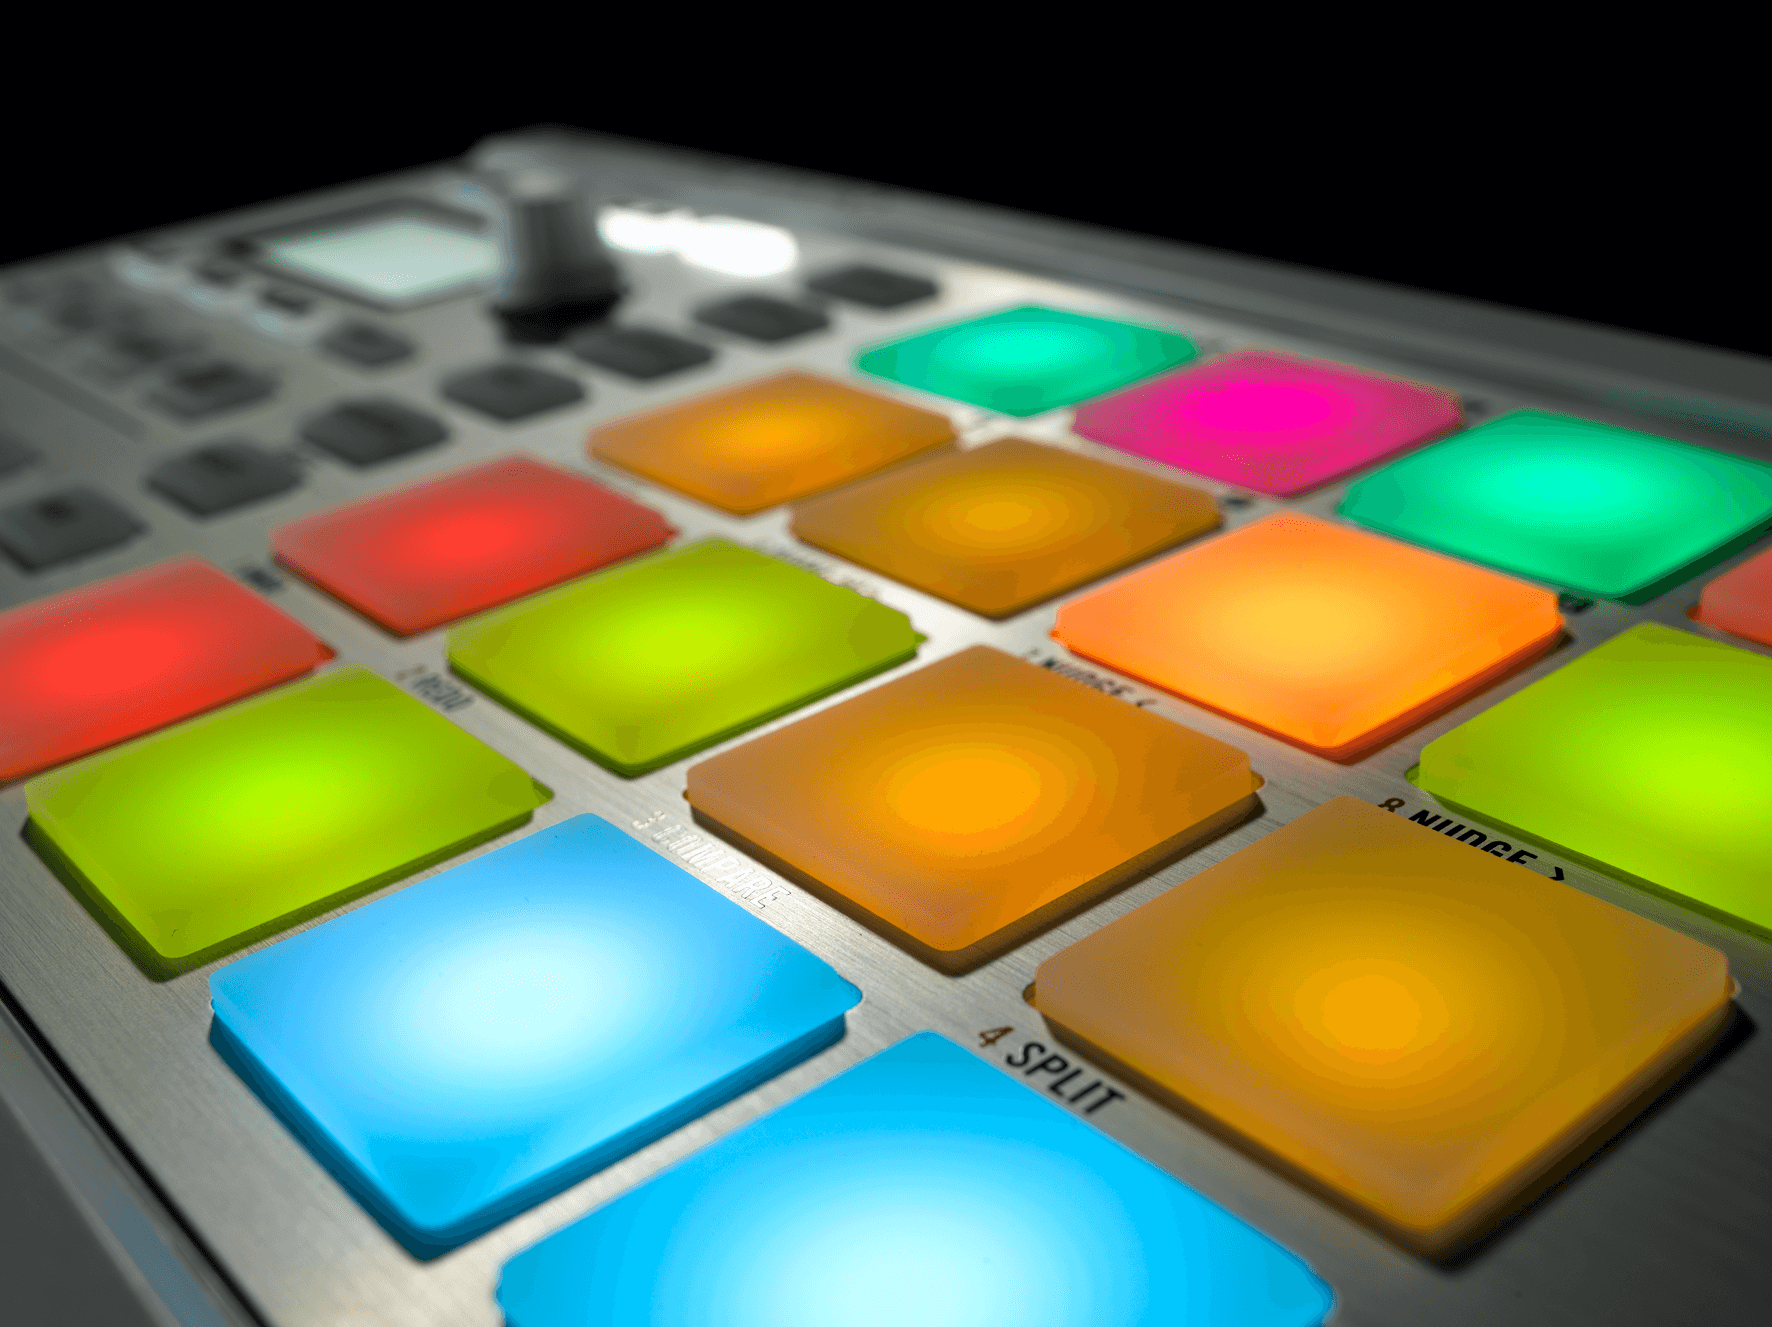 maschine-kits NI_Maschine_Mikro_Detail_04